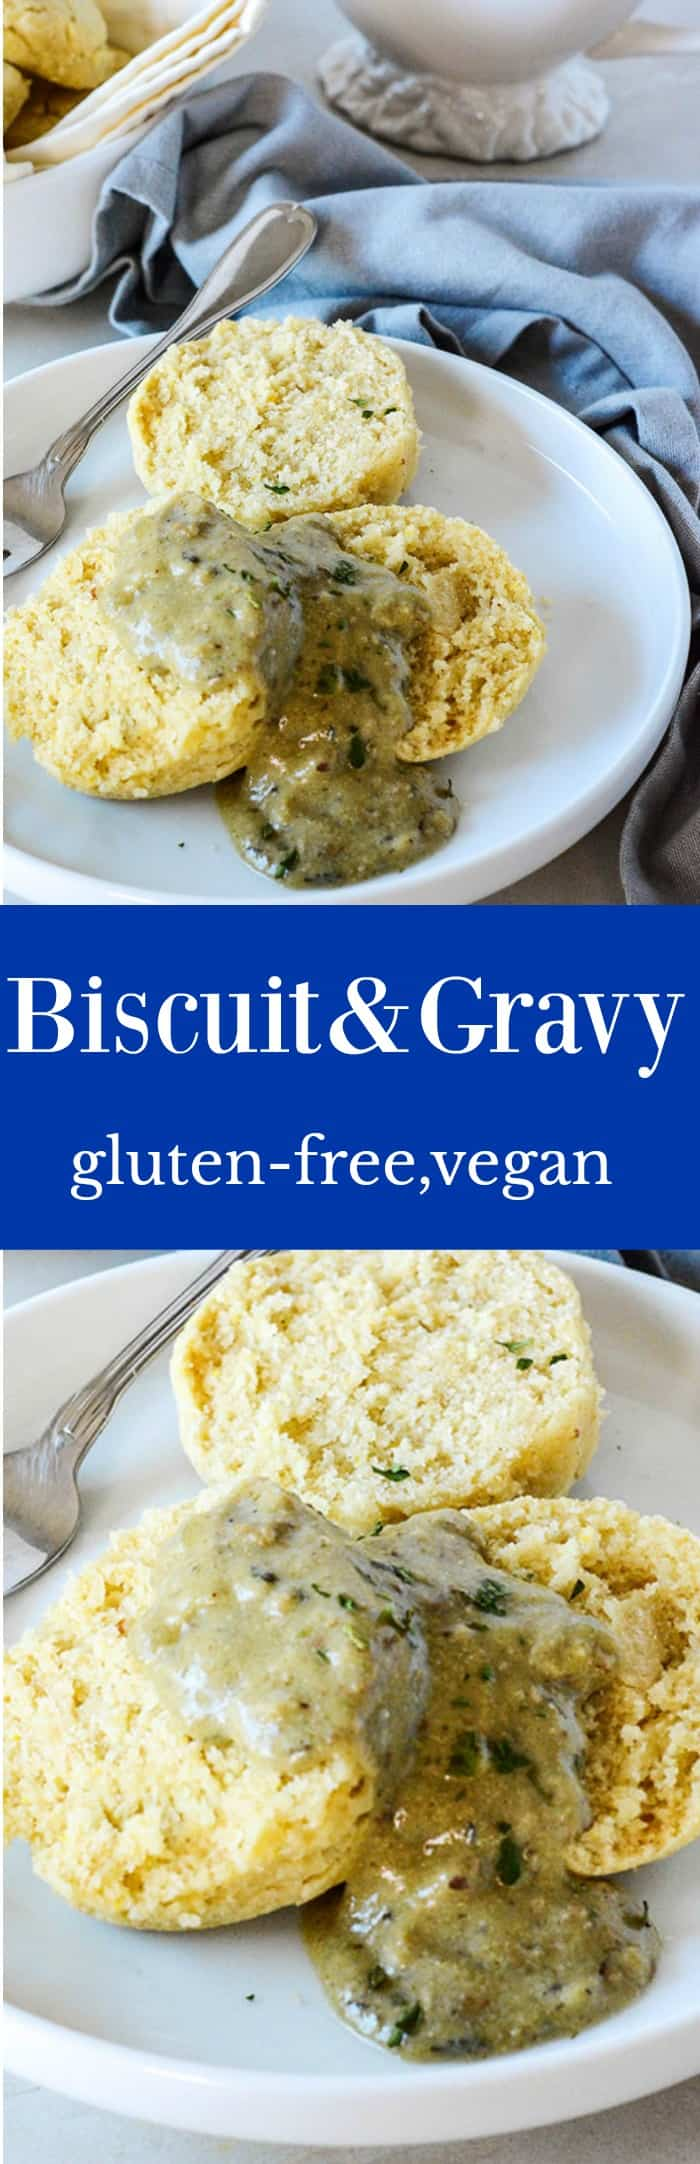 Biscuit And Gravy (Gluten-Free, Vegan)